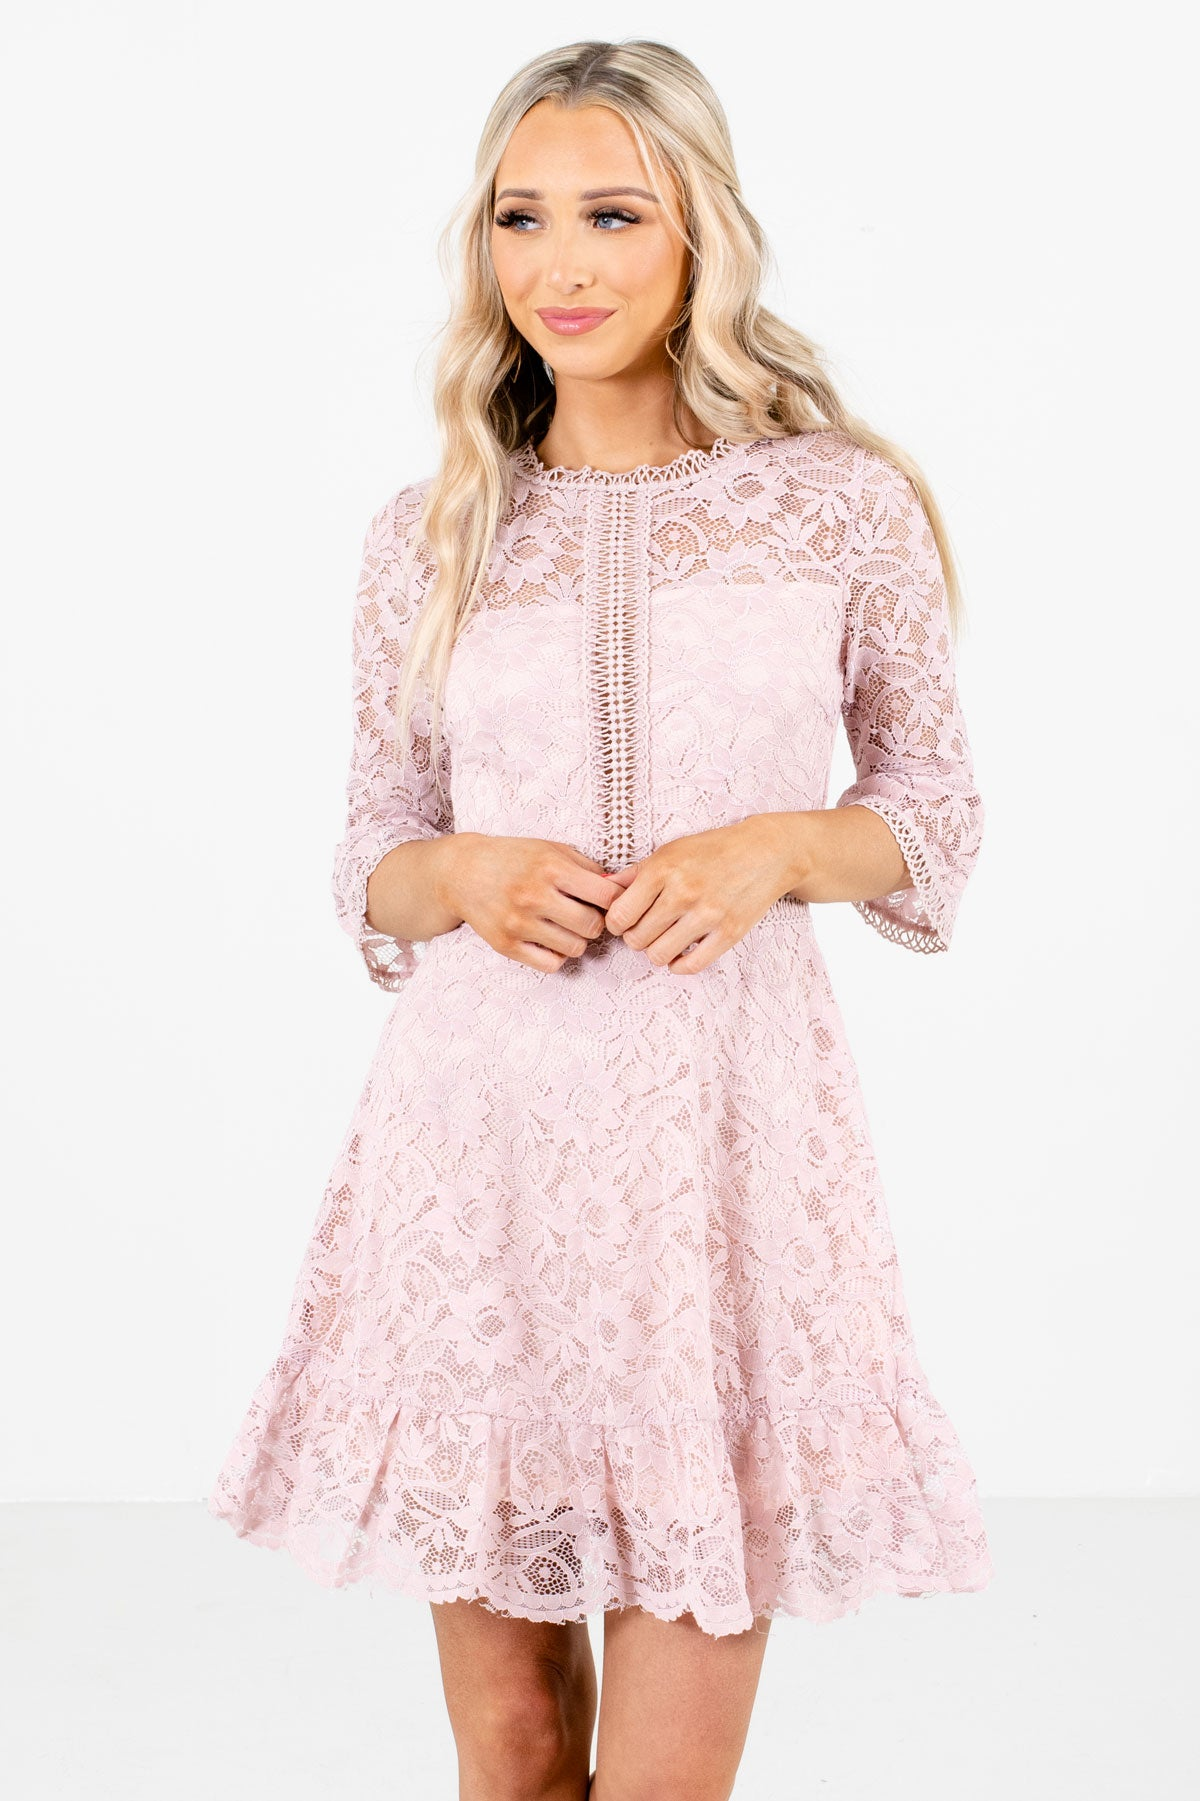 Pink Floral Lace Boutique Mini Dresses for Women